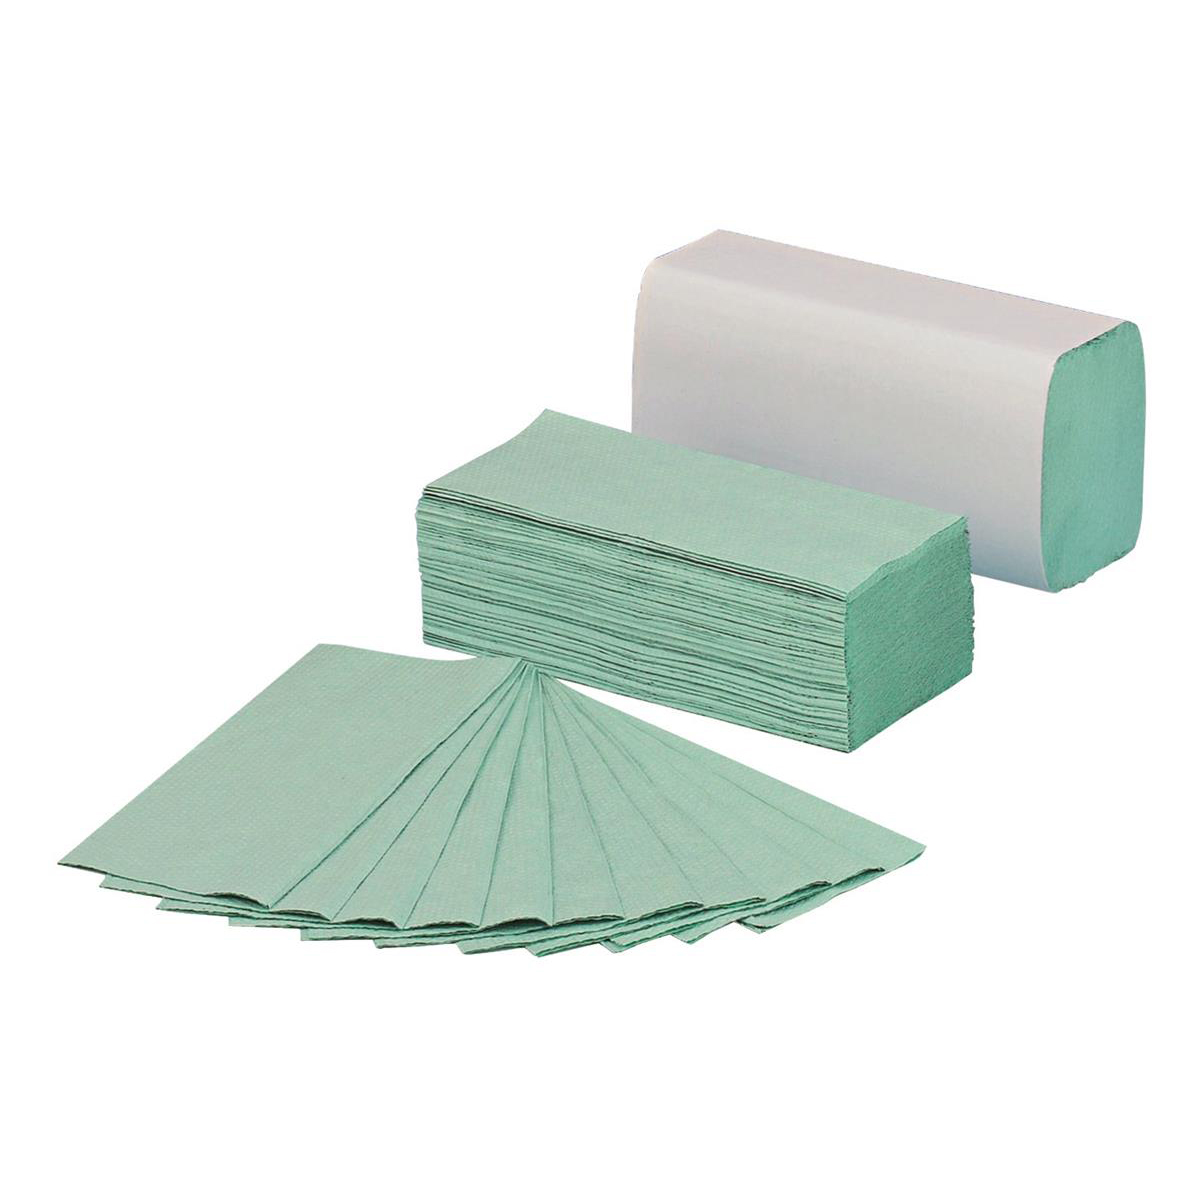 Hand Towels & Dispensers 5 Star Facilities Hand Towels 1 Ply Z-fold 250 Towels per Sleeve Green Pack 12 Sleeves